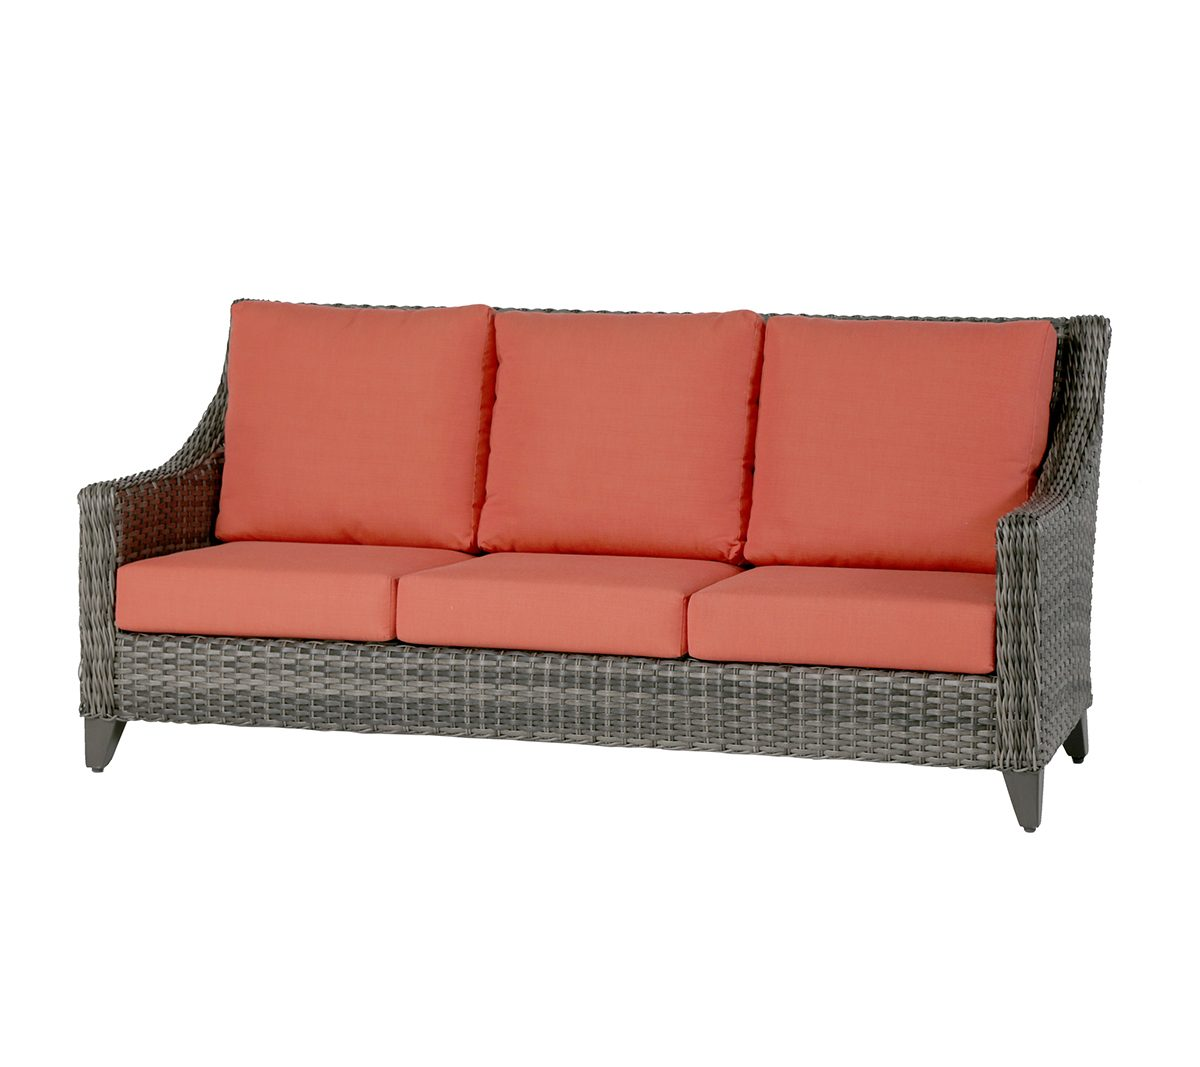 ratana st martin sofa | Shop Patio bay